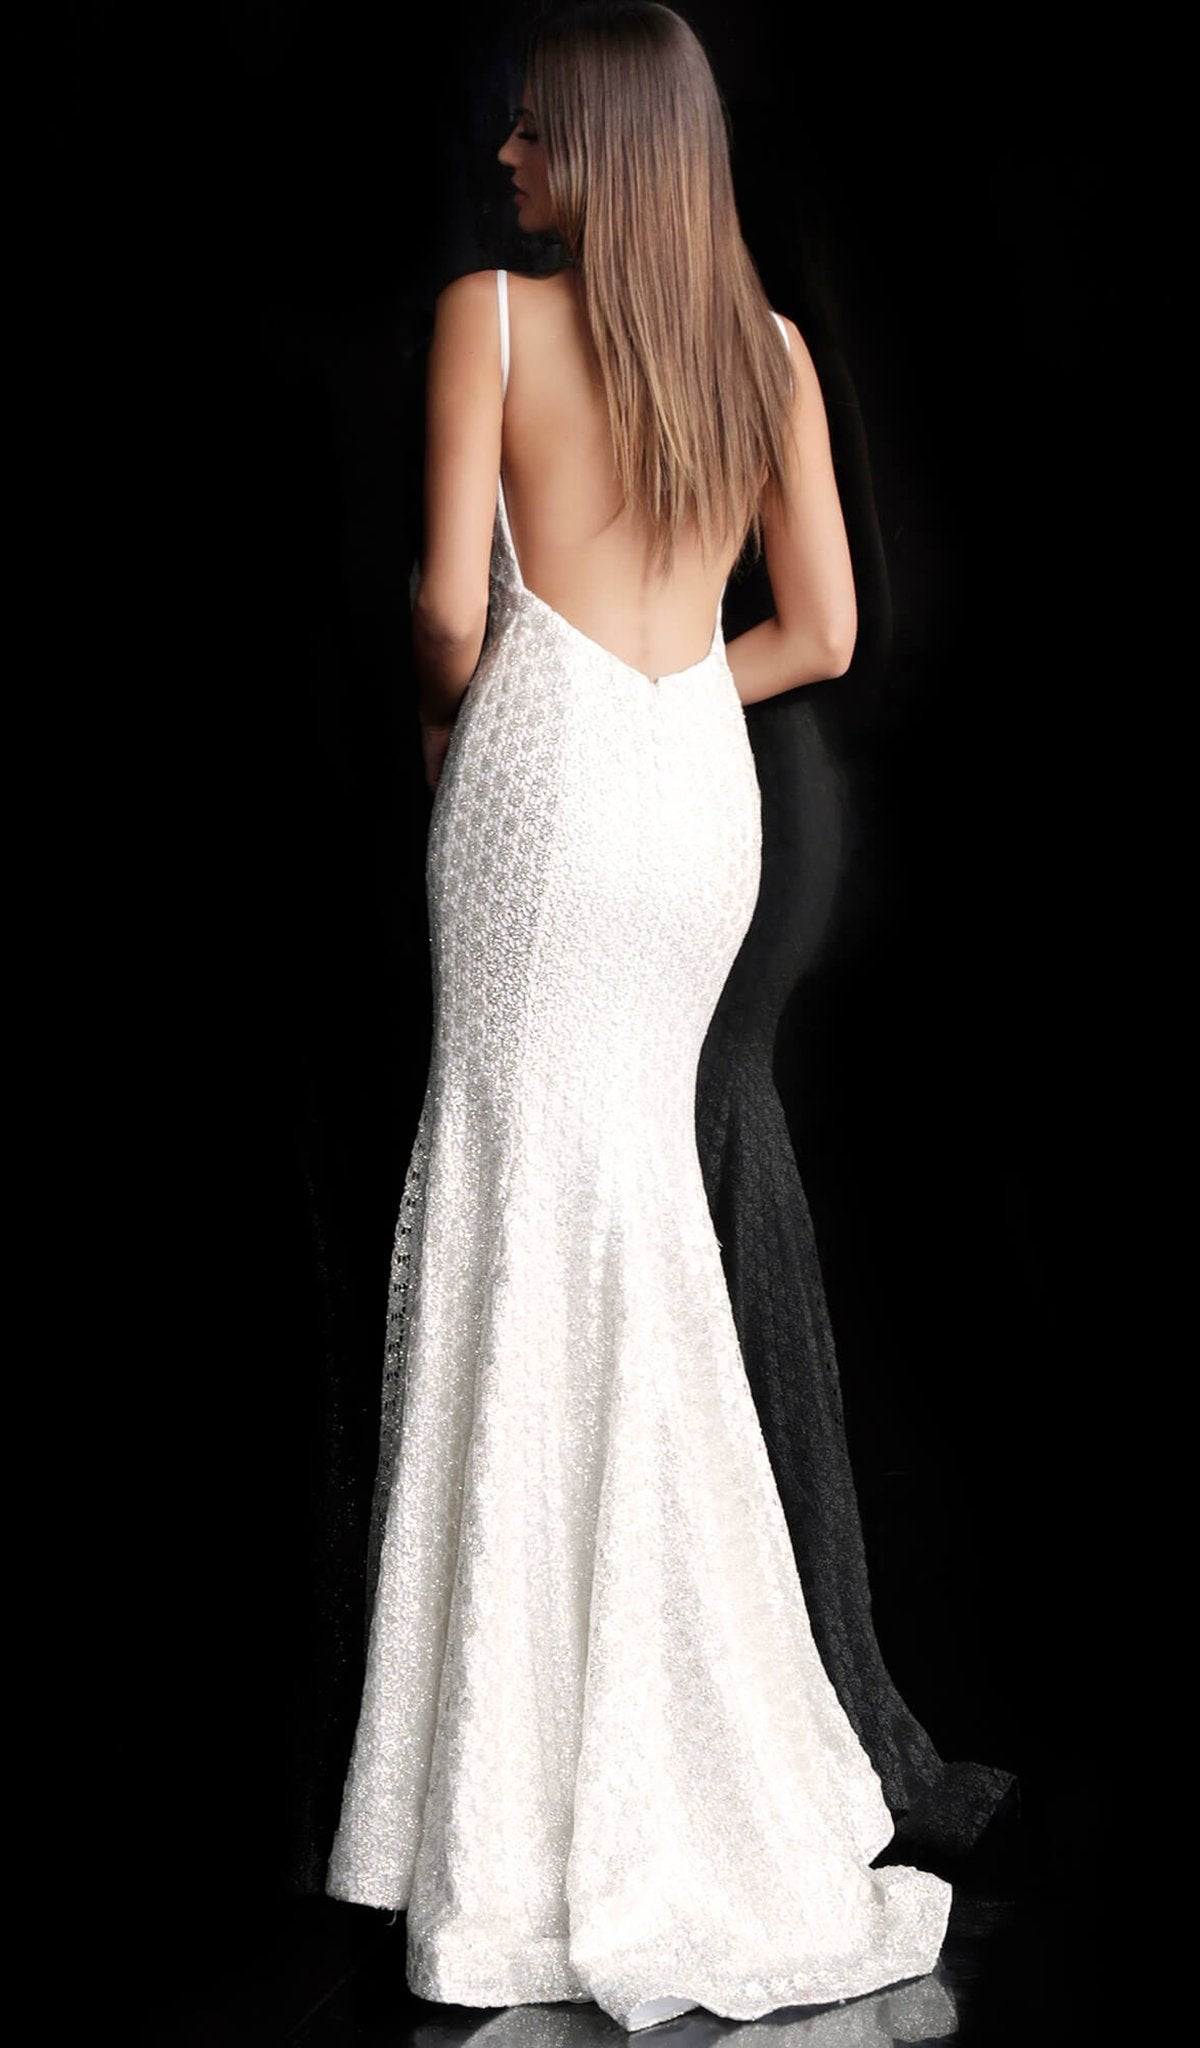 Jovani - Adorned Lace Backless Long Gown 63456 In White